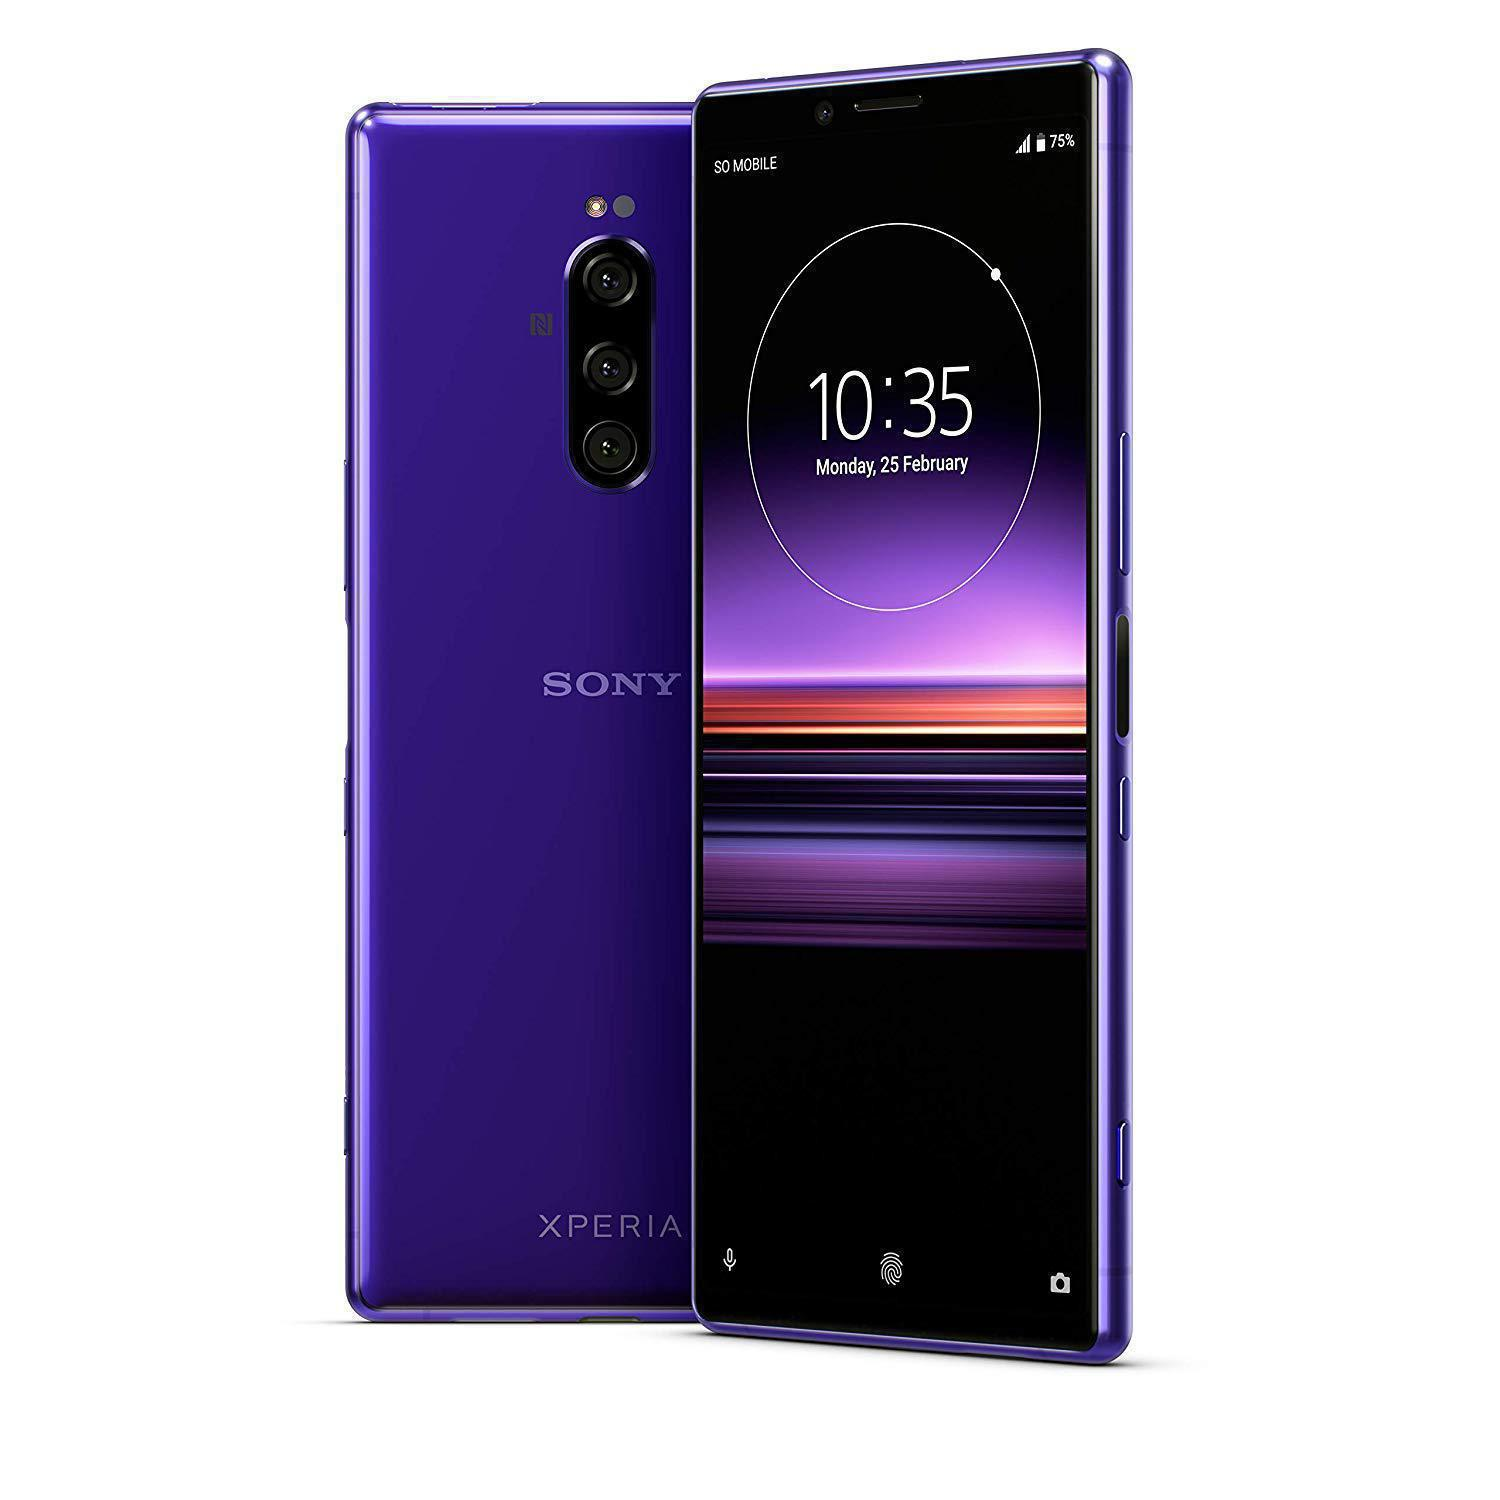 Smartphone Sony Xperia 1 - The ultimate 2020 Review - Best price in UAE - Darahim.net